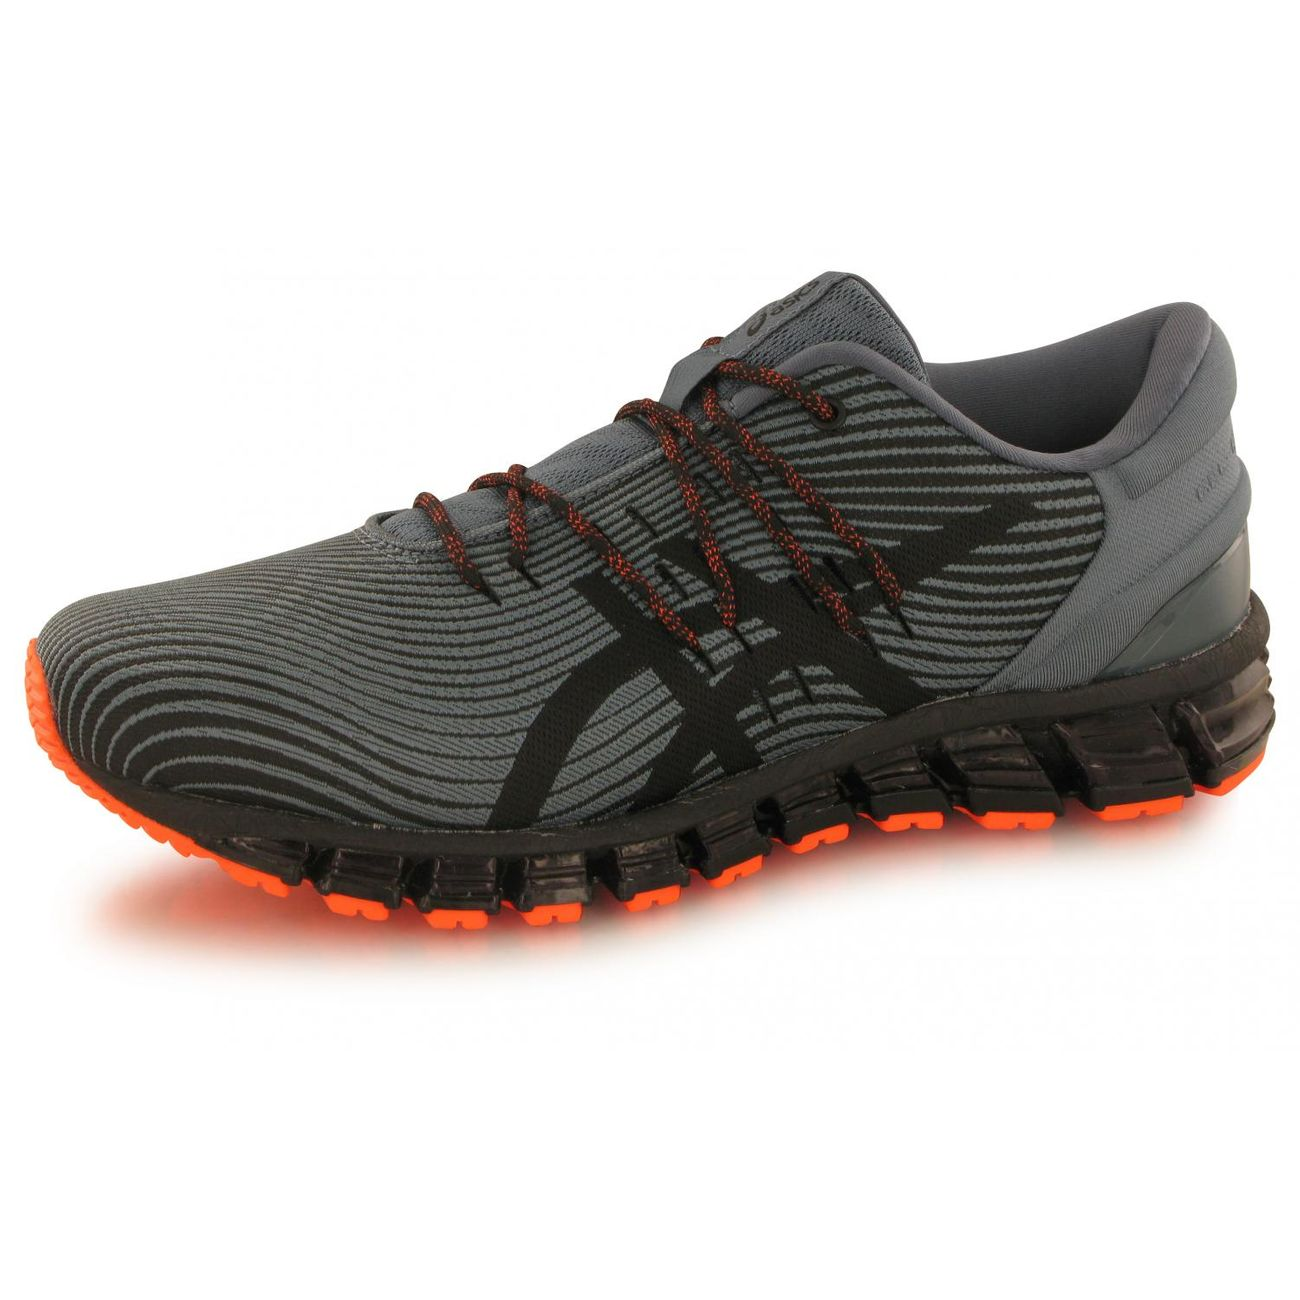 Homme 360 Asics Gel Gris Quantum Chaussures 4 Yqf0wgwR